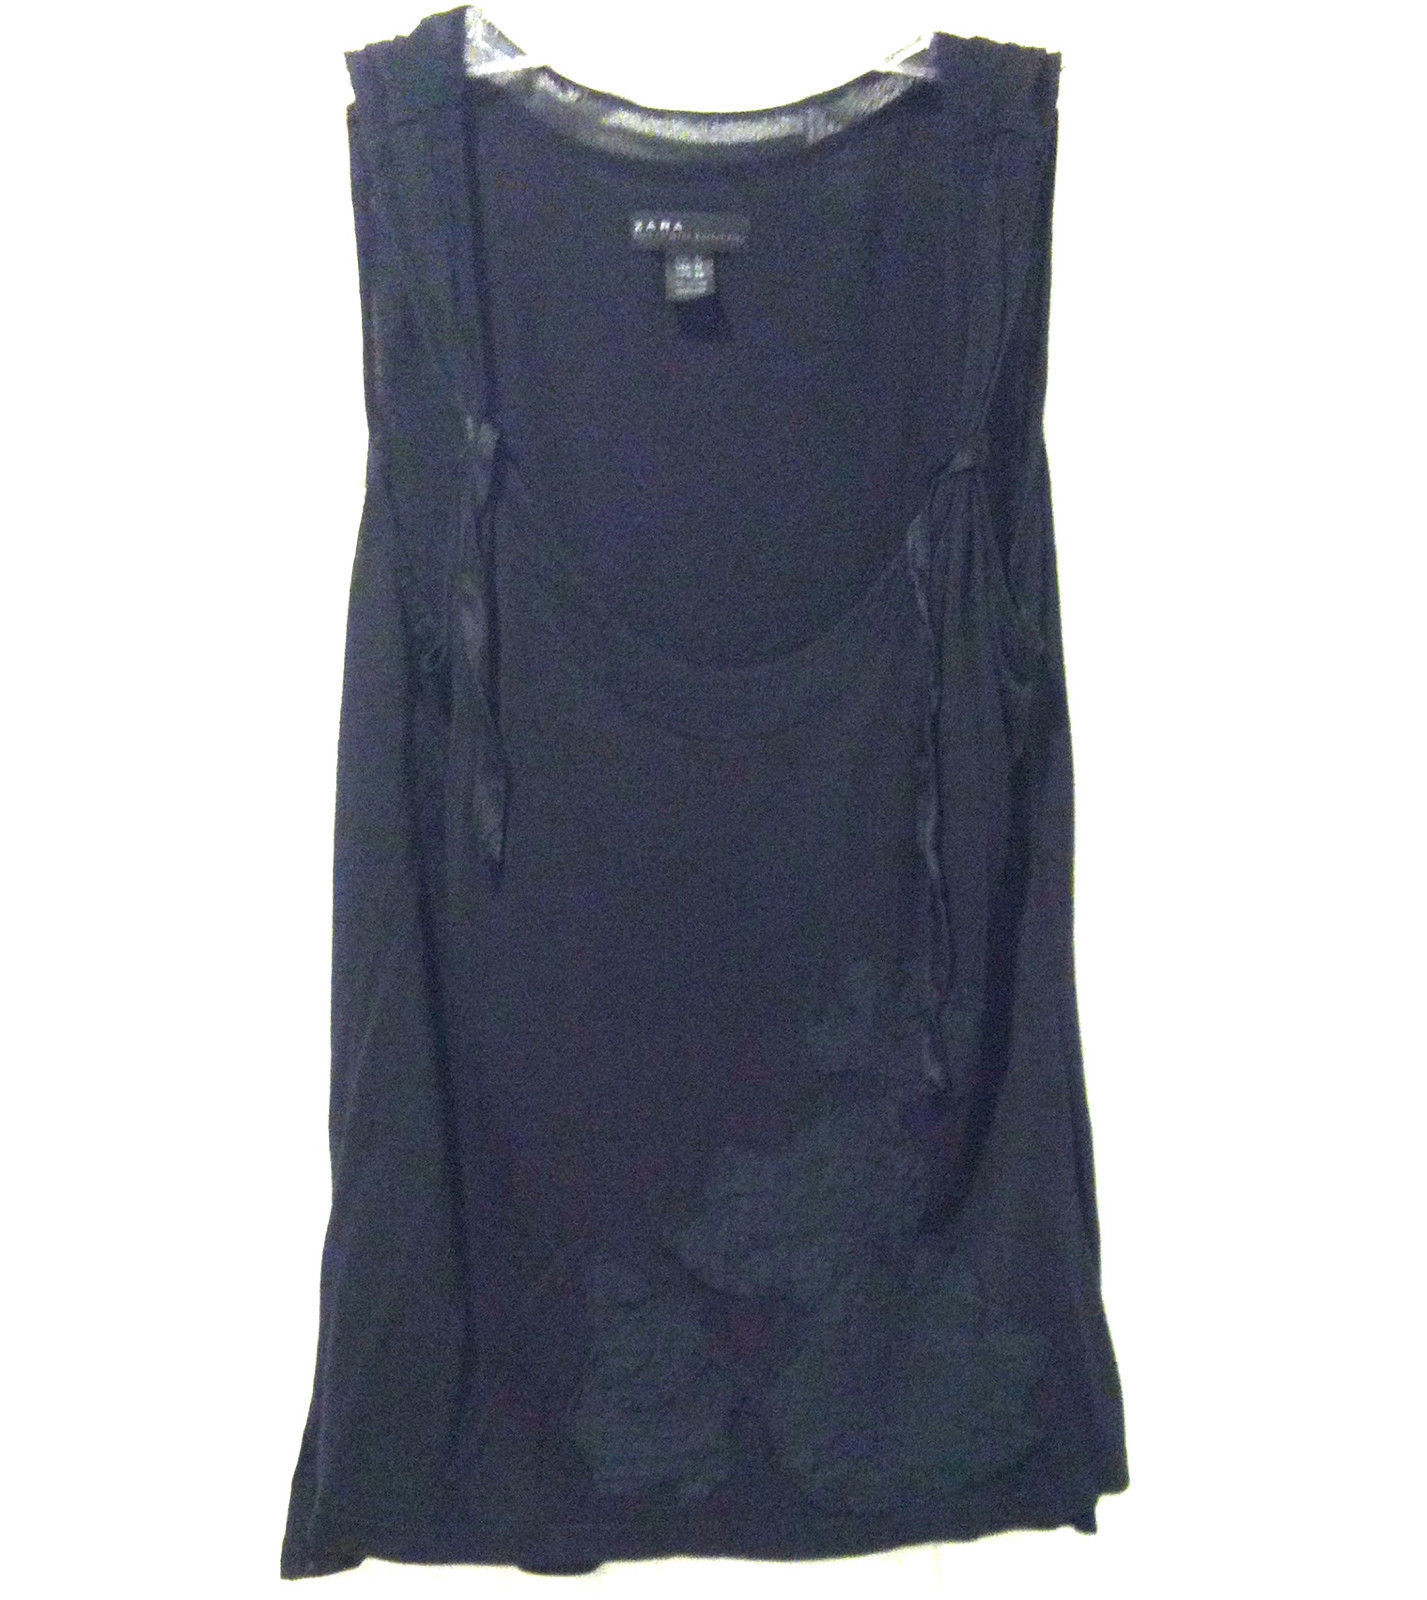 3a51f00126696b WOMENS ZARA COLLECTION SZ M BLACK VISCOSE KNIT TANK TOP WITH FLOWERS ON  FRONT